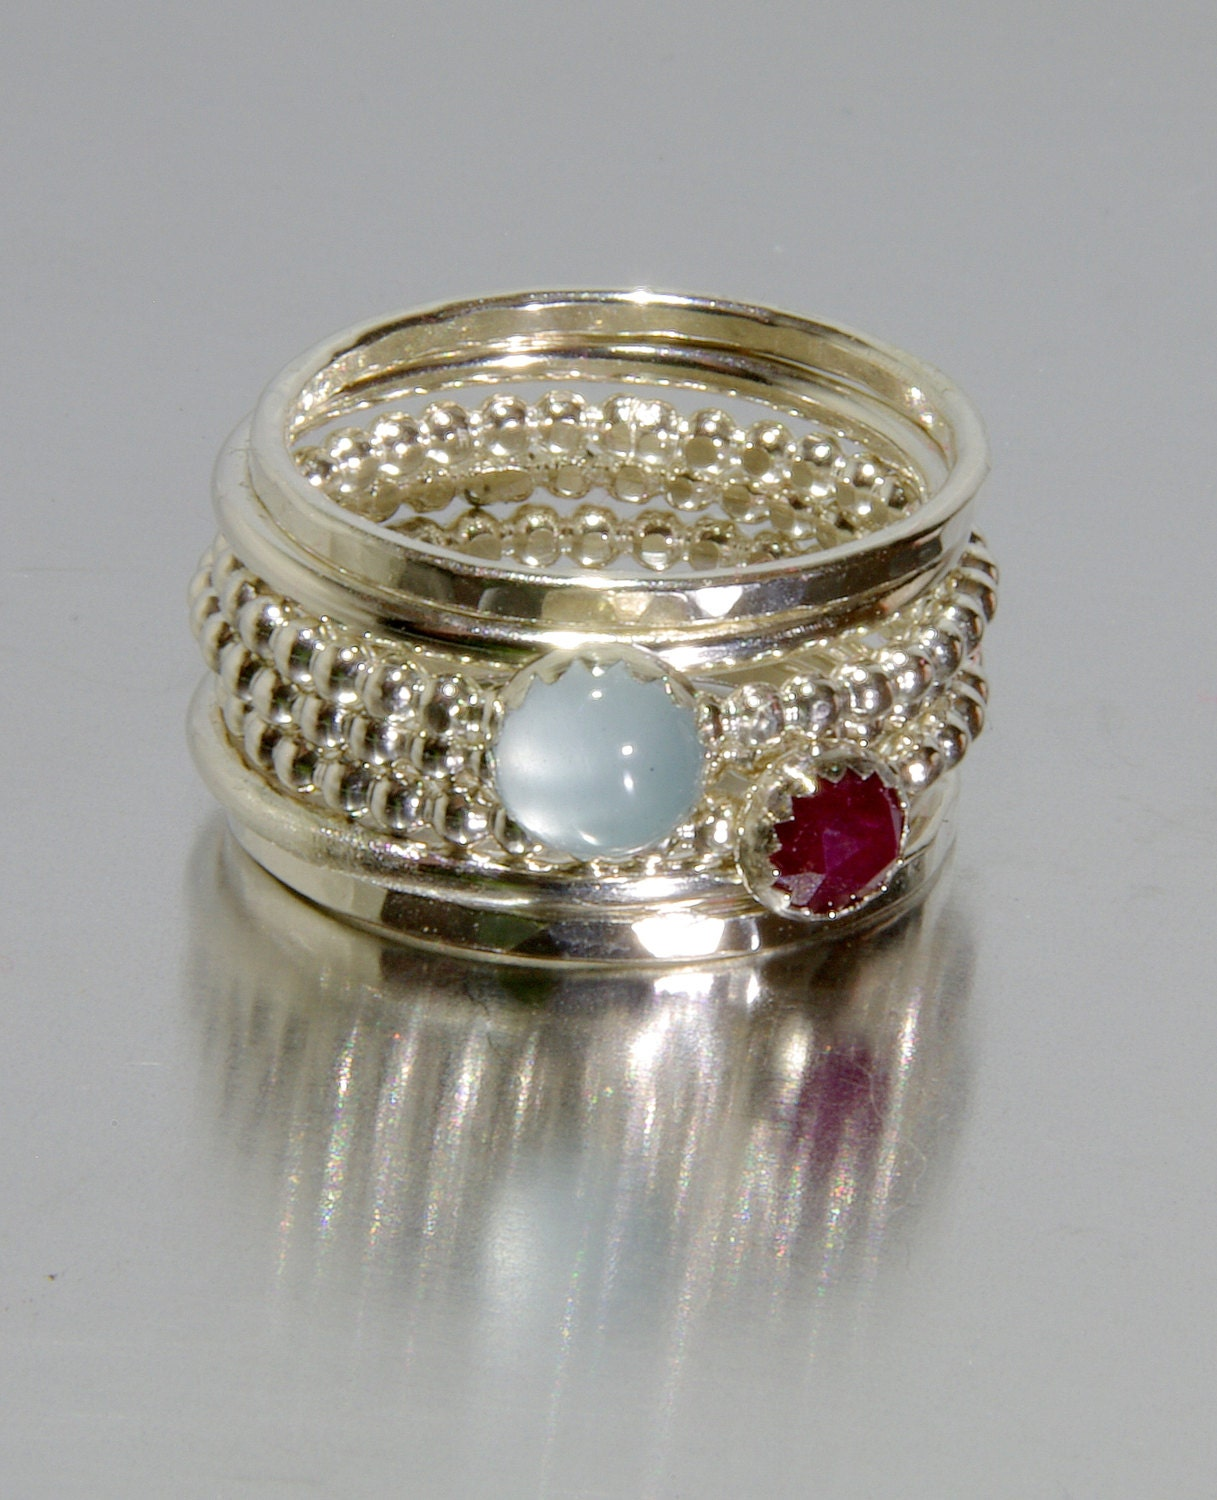 Aquamarine & Ruby Stacking Mothers Rings By Nadinejewelry. Amethyst Lockets. 300 Dollar Engagement Rings. Gem Stone Bracelet. Code Rings